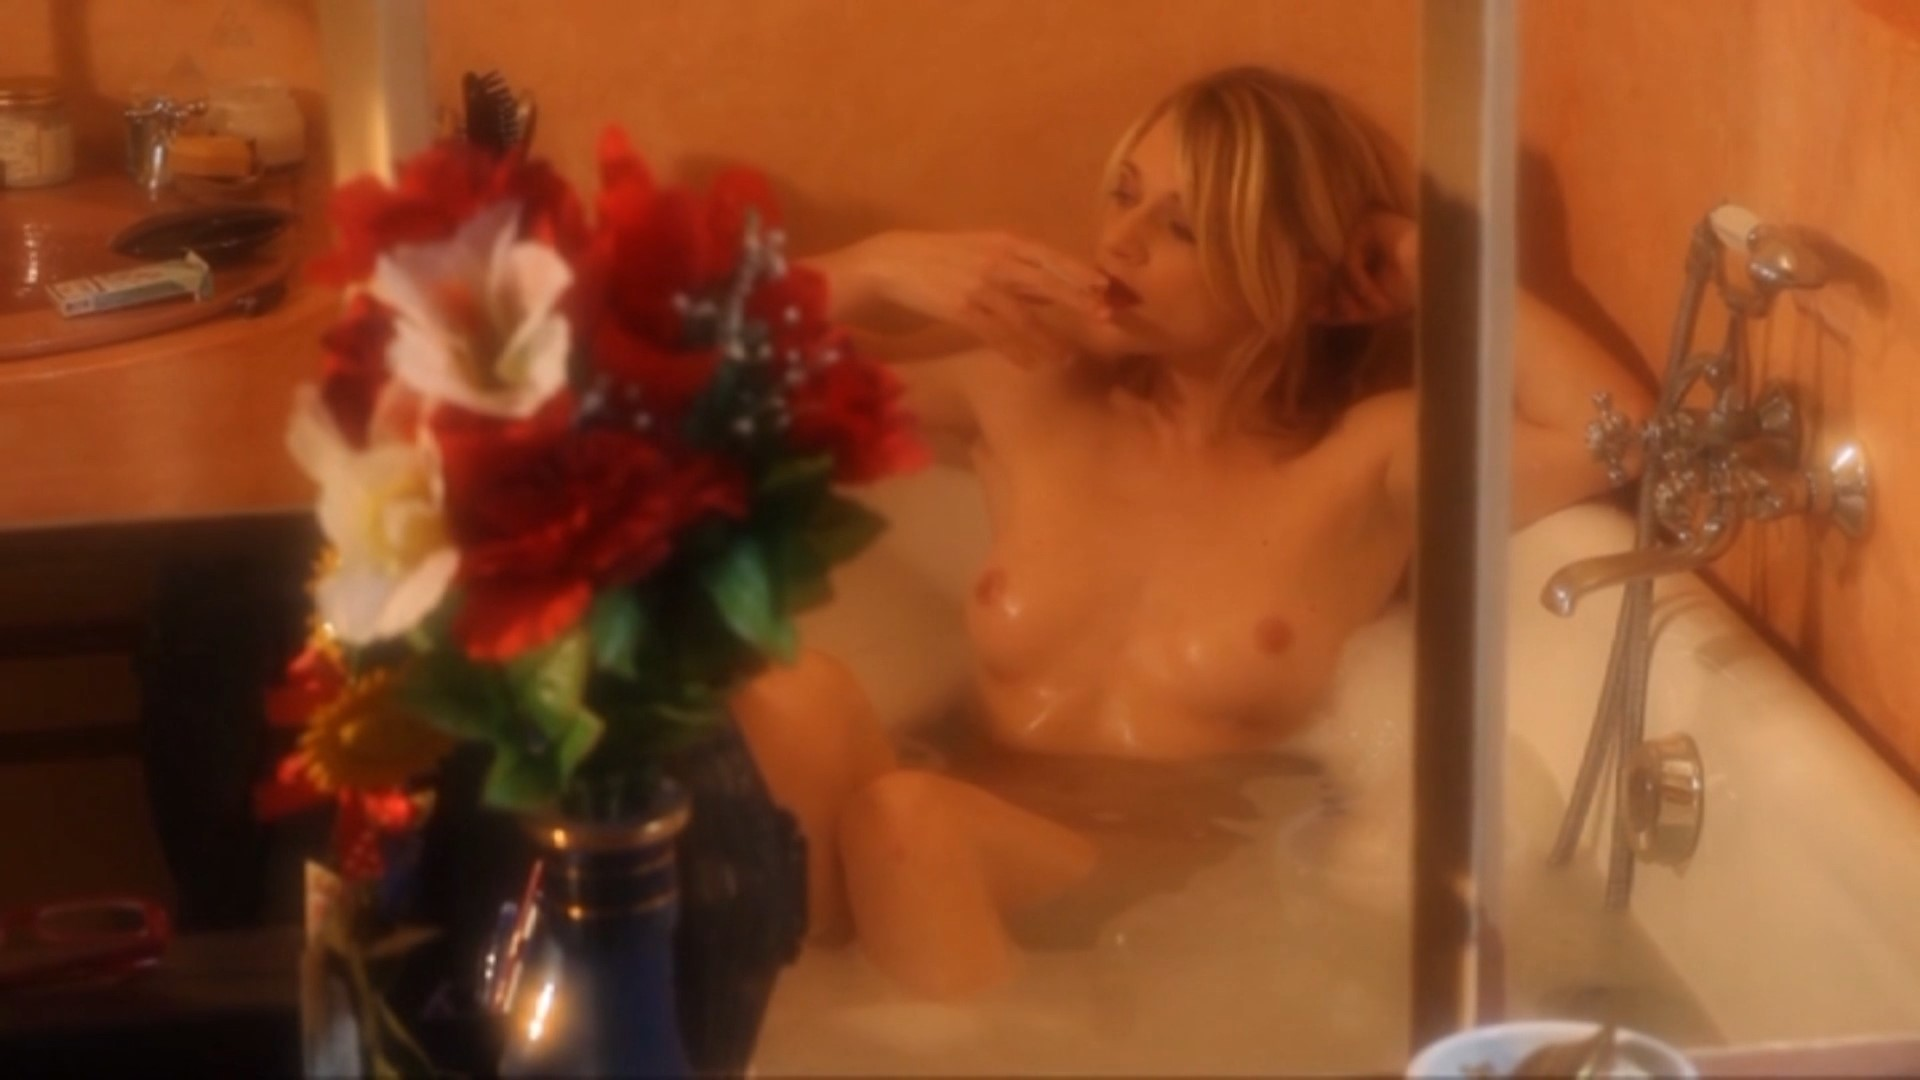 Anna Naigeon, Ioanna Imbert – Last Caress (2010) HD 1080p